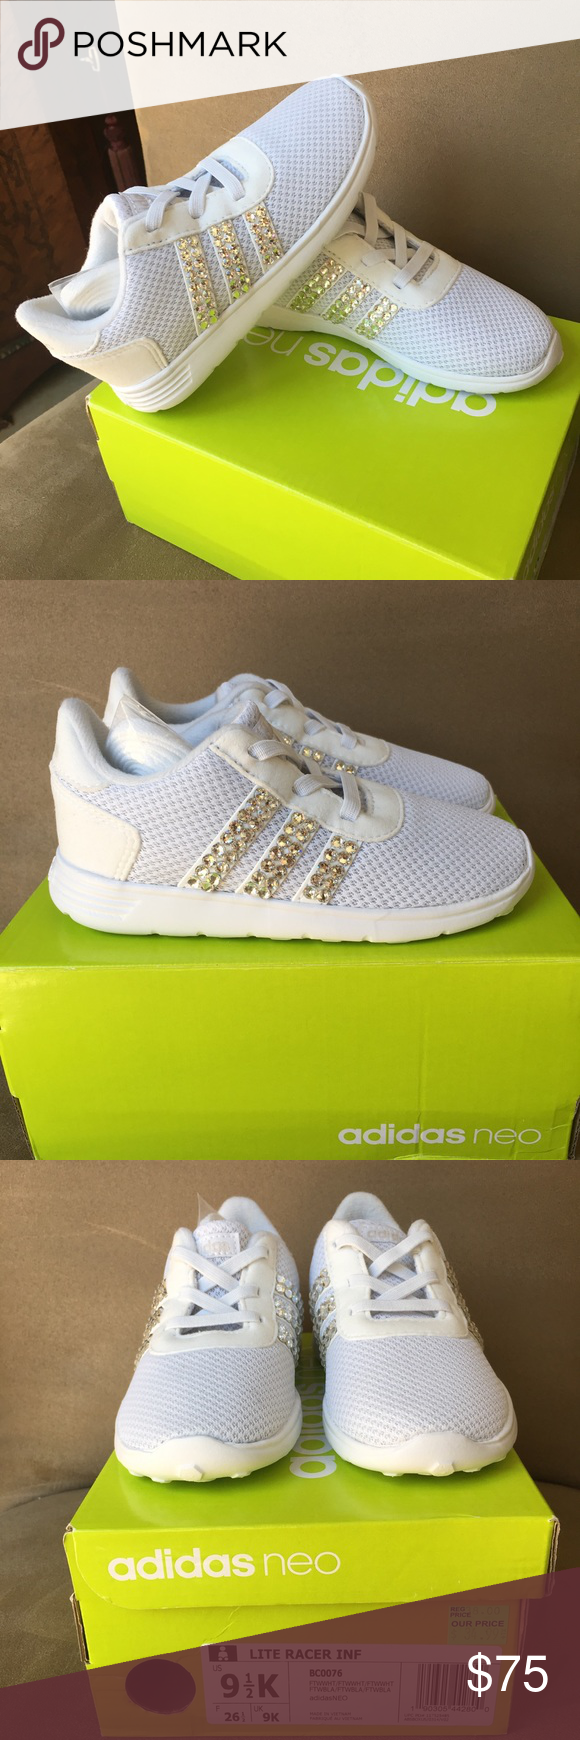 on sale 04f7c ce164 Swaovski Adidas Bedazzled Shoe - Habdcrafted Kids Adidas Shoe - Handcrafted  - Swarovski Crystals - Made to Order adidas Shoes Sneakers